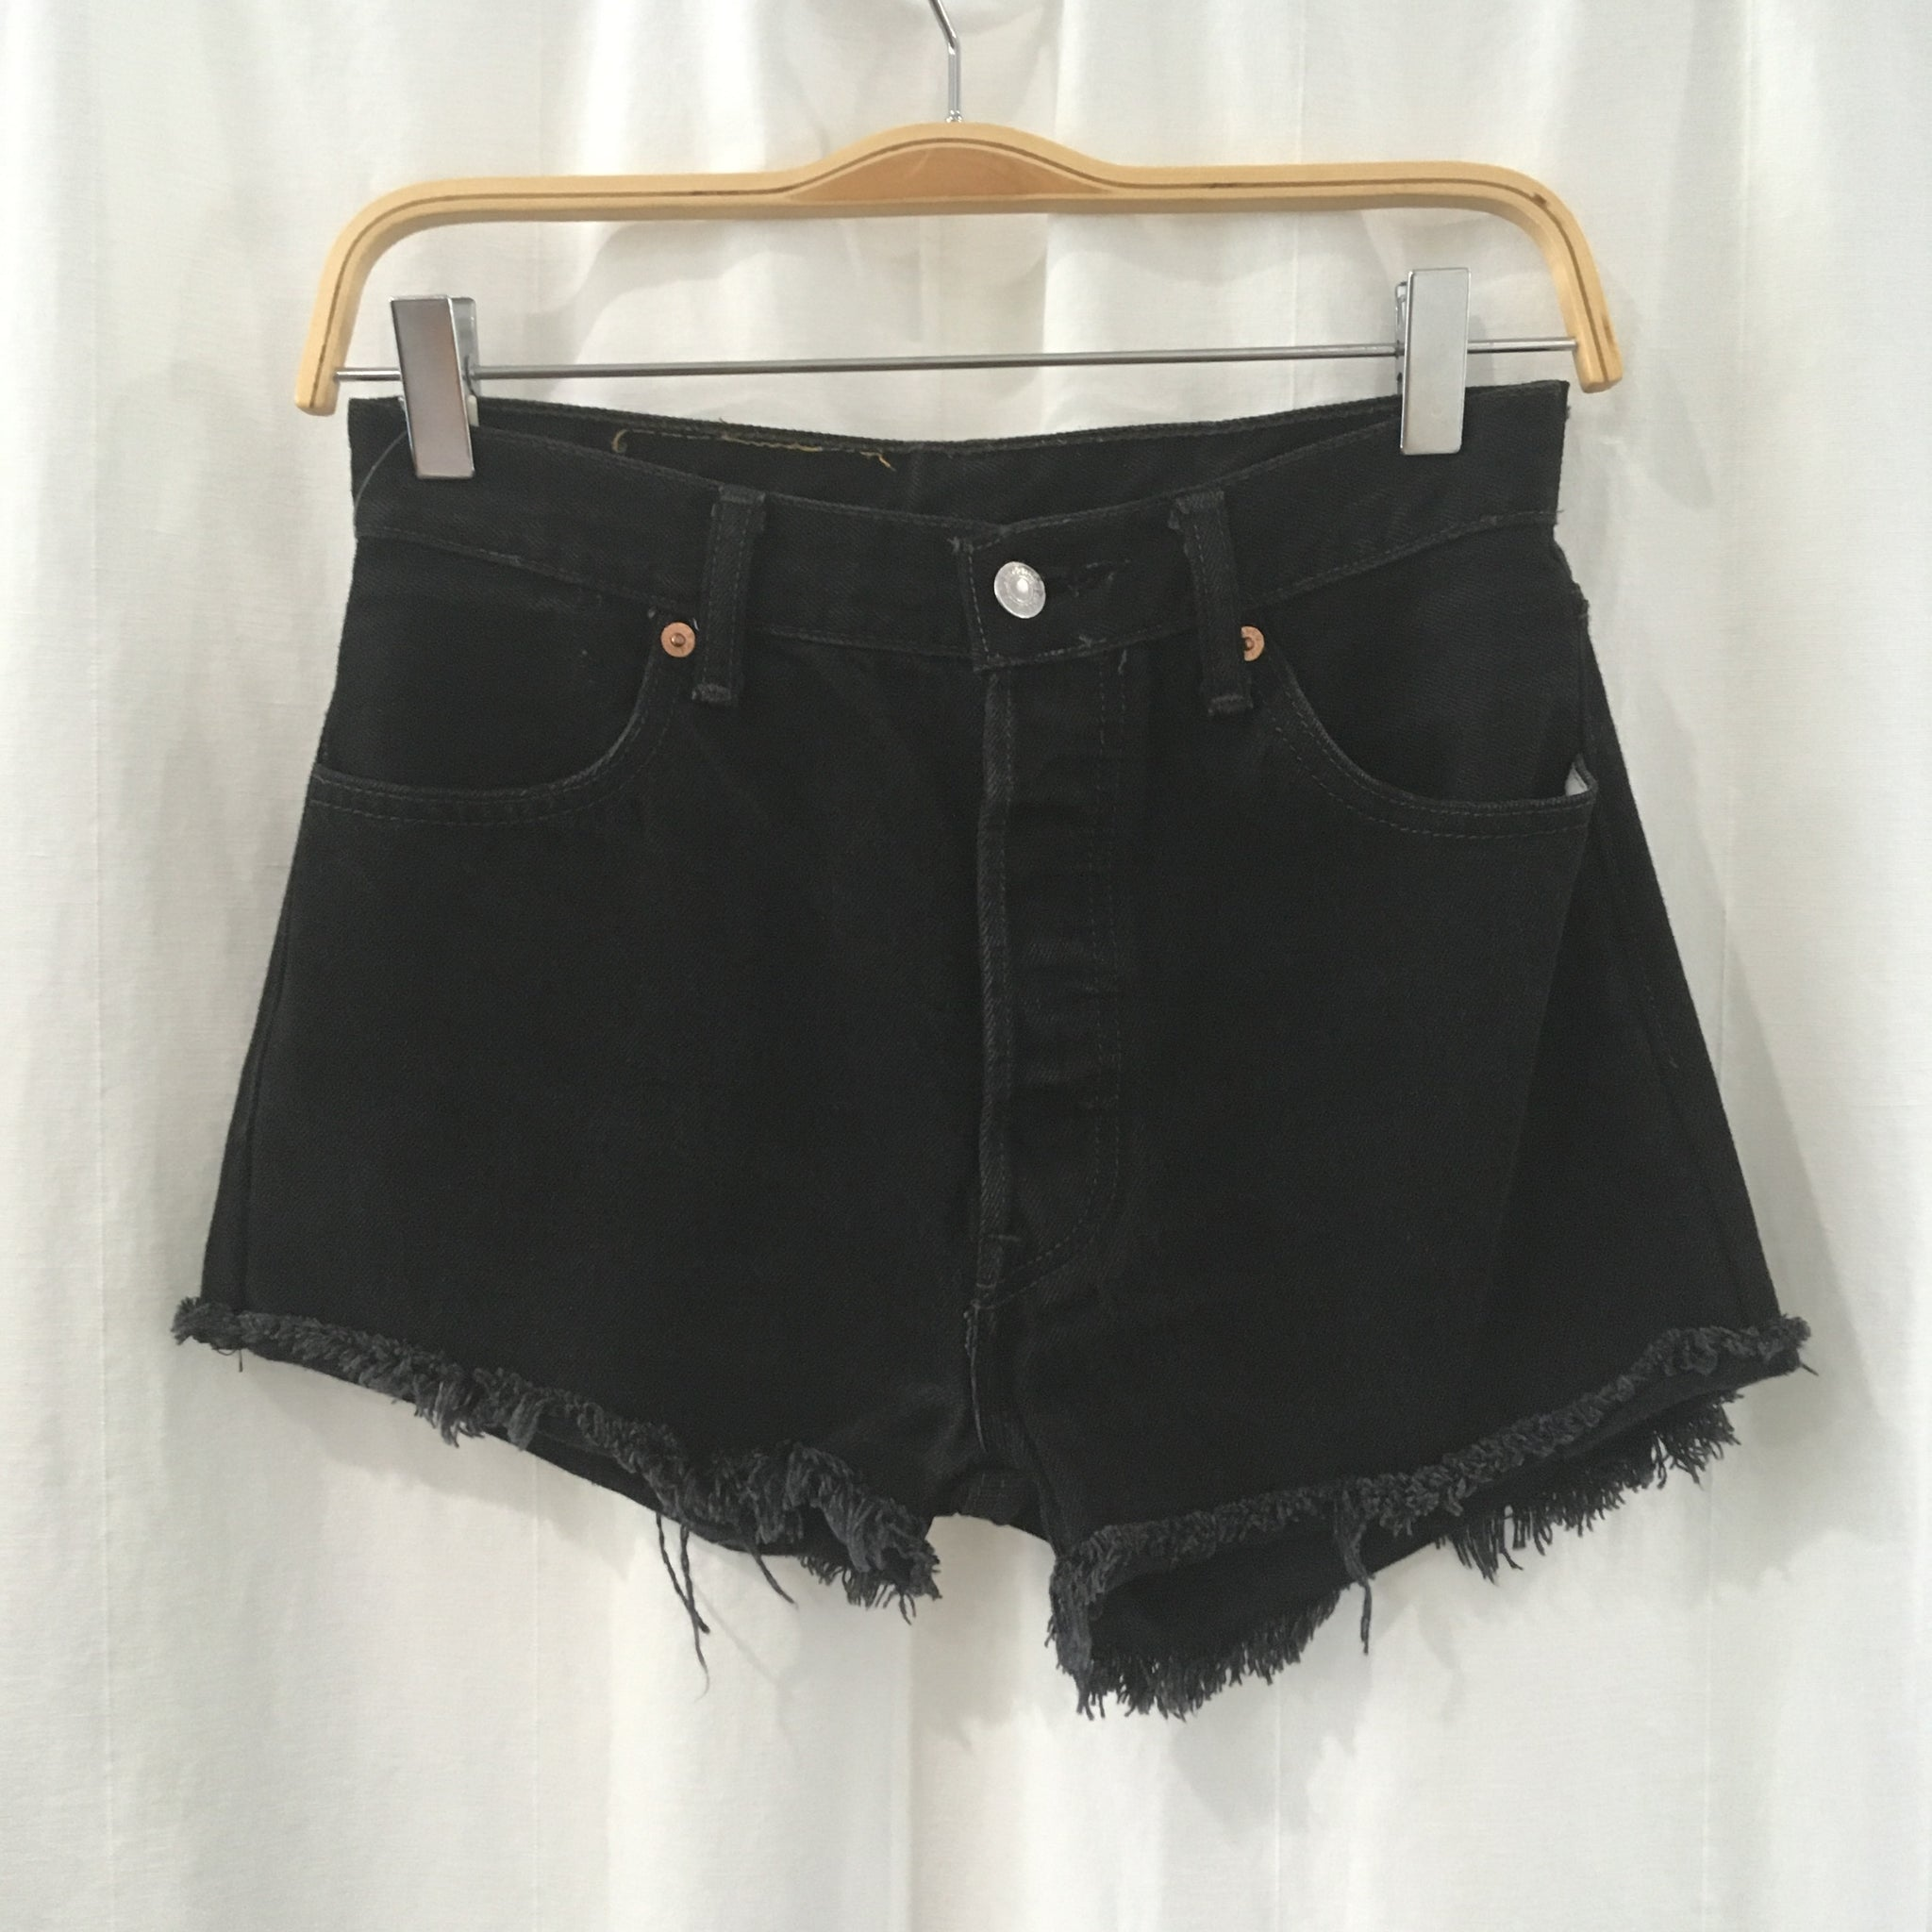 Black Reworked Levi's cut offs